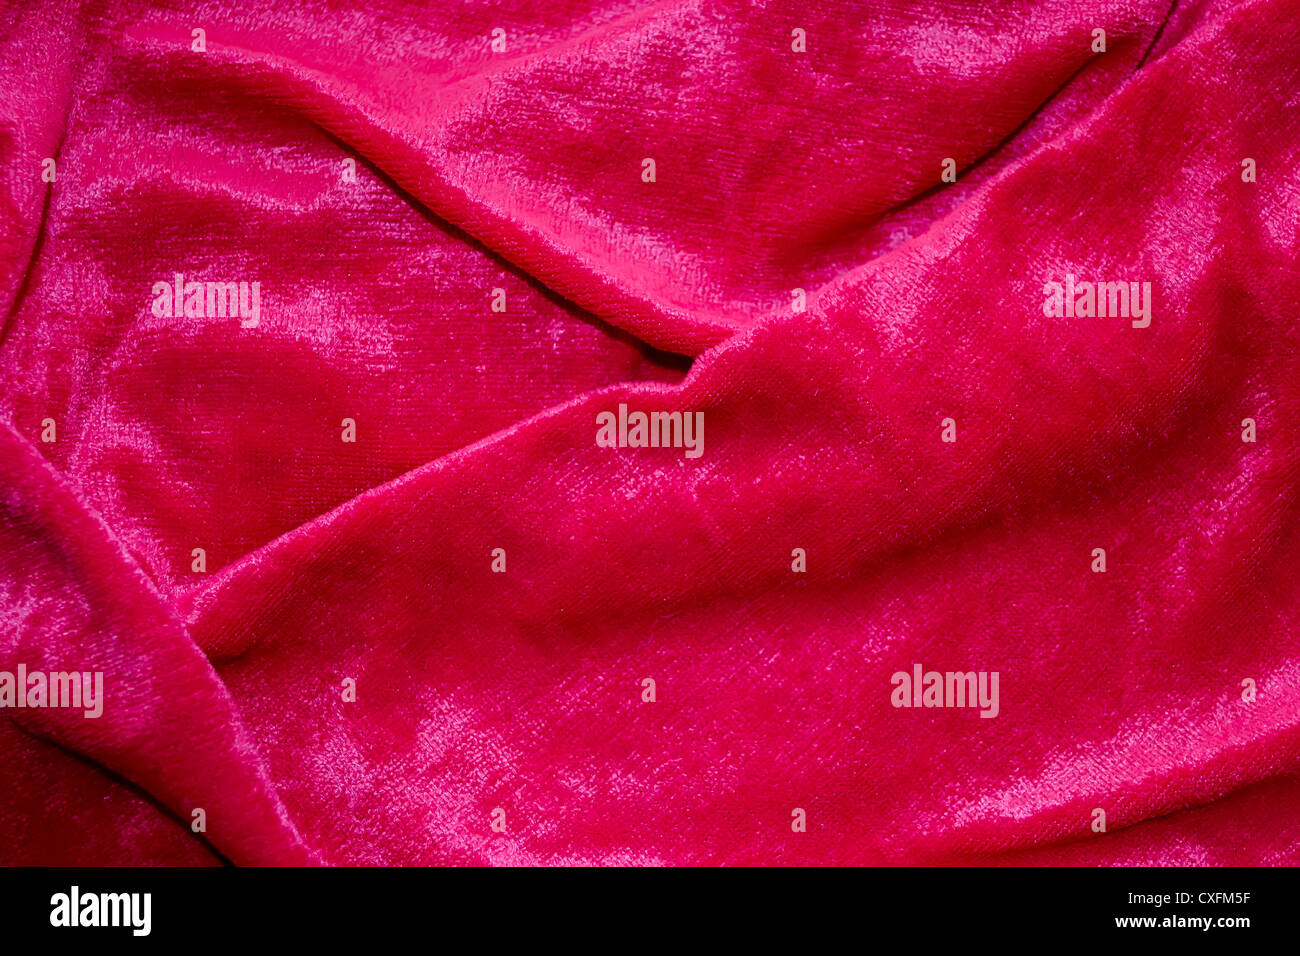 Background of red cloth pleated - Stock Image